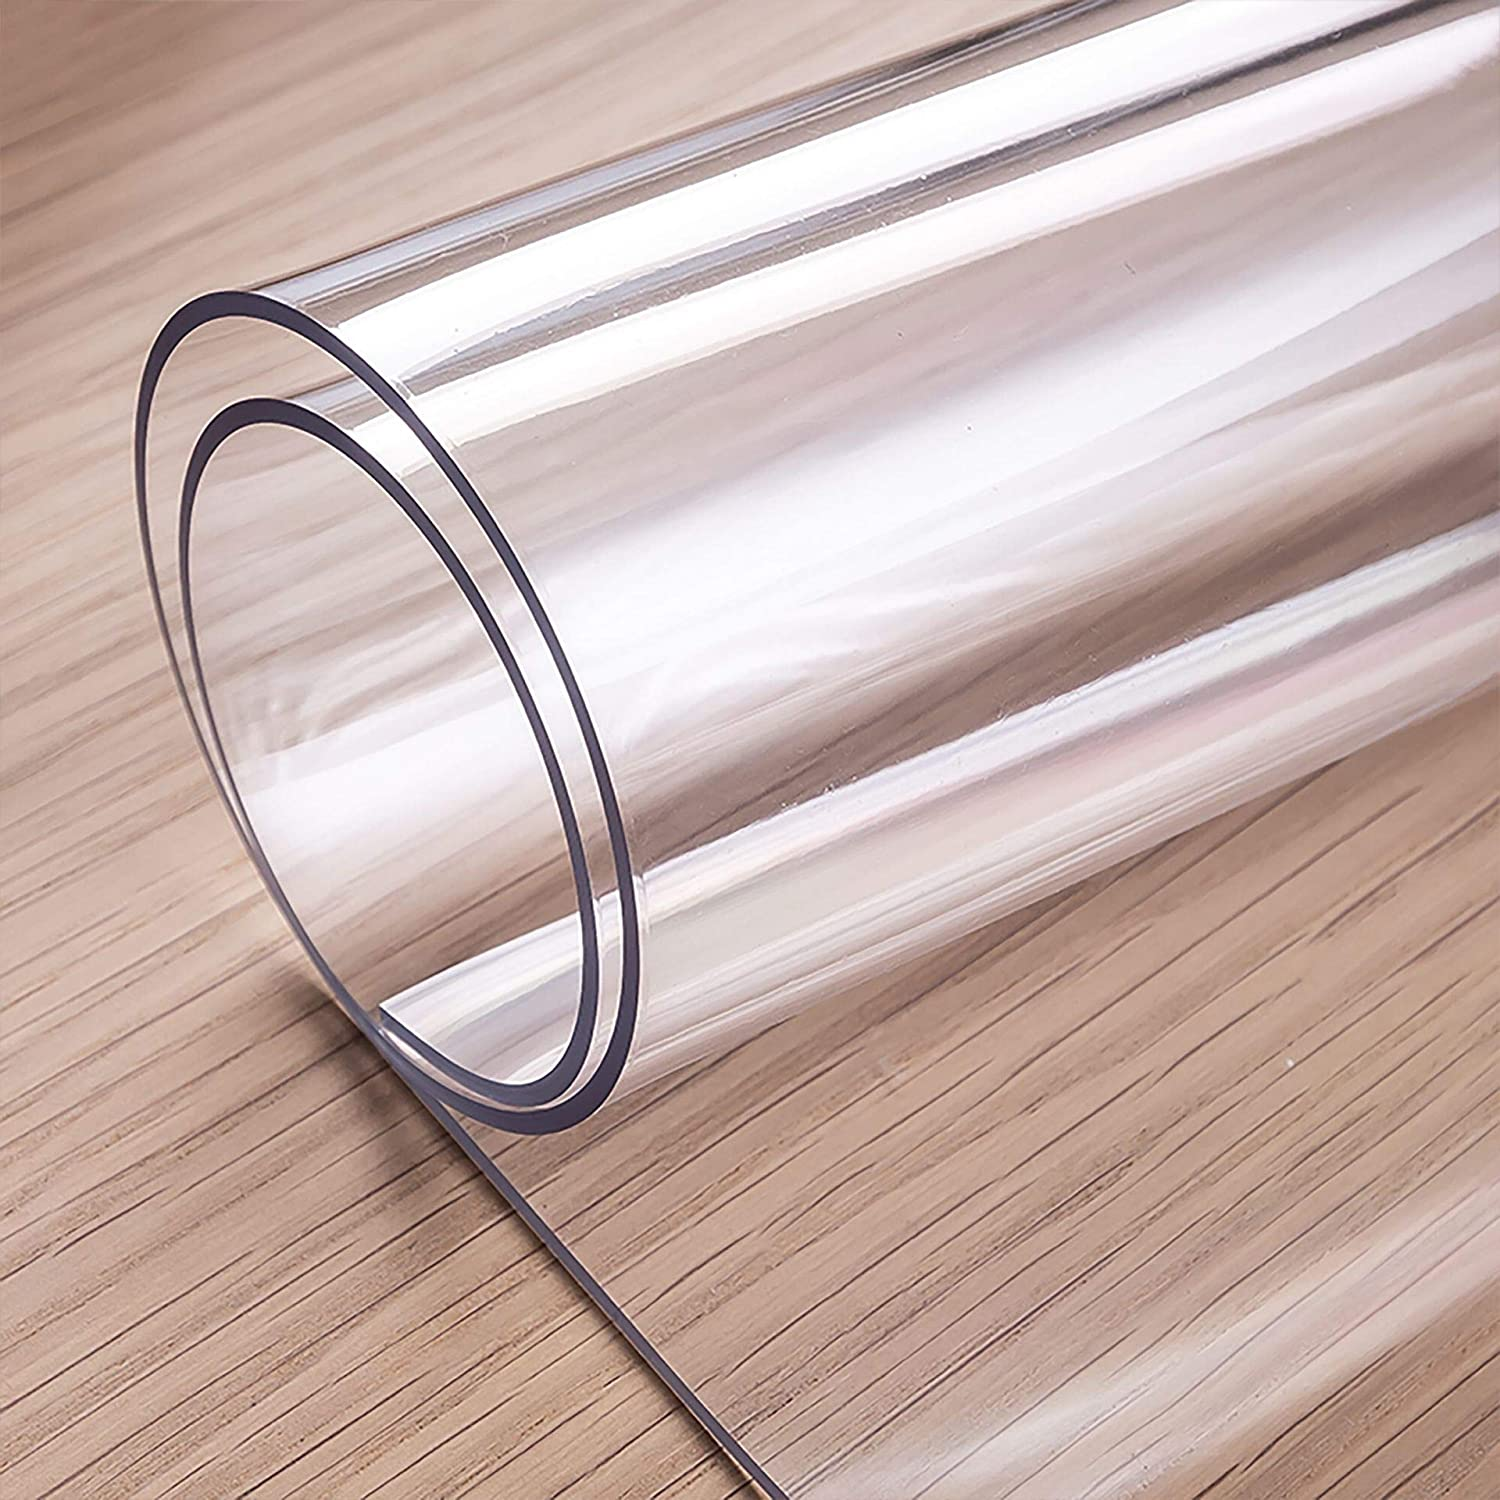 OstepDecor Custom 2mm Thick Clear Table Cover, 80 x 40 Inch, Table Protector for Dining Room Table, Clear Table Cloth Cover Protector, Clear Table Pad, Plastic Table Cloth for Kitchen Wooden Table